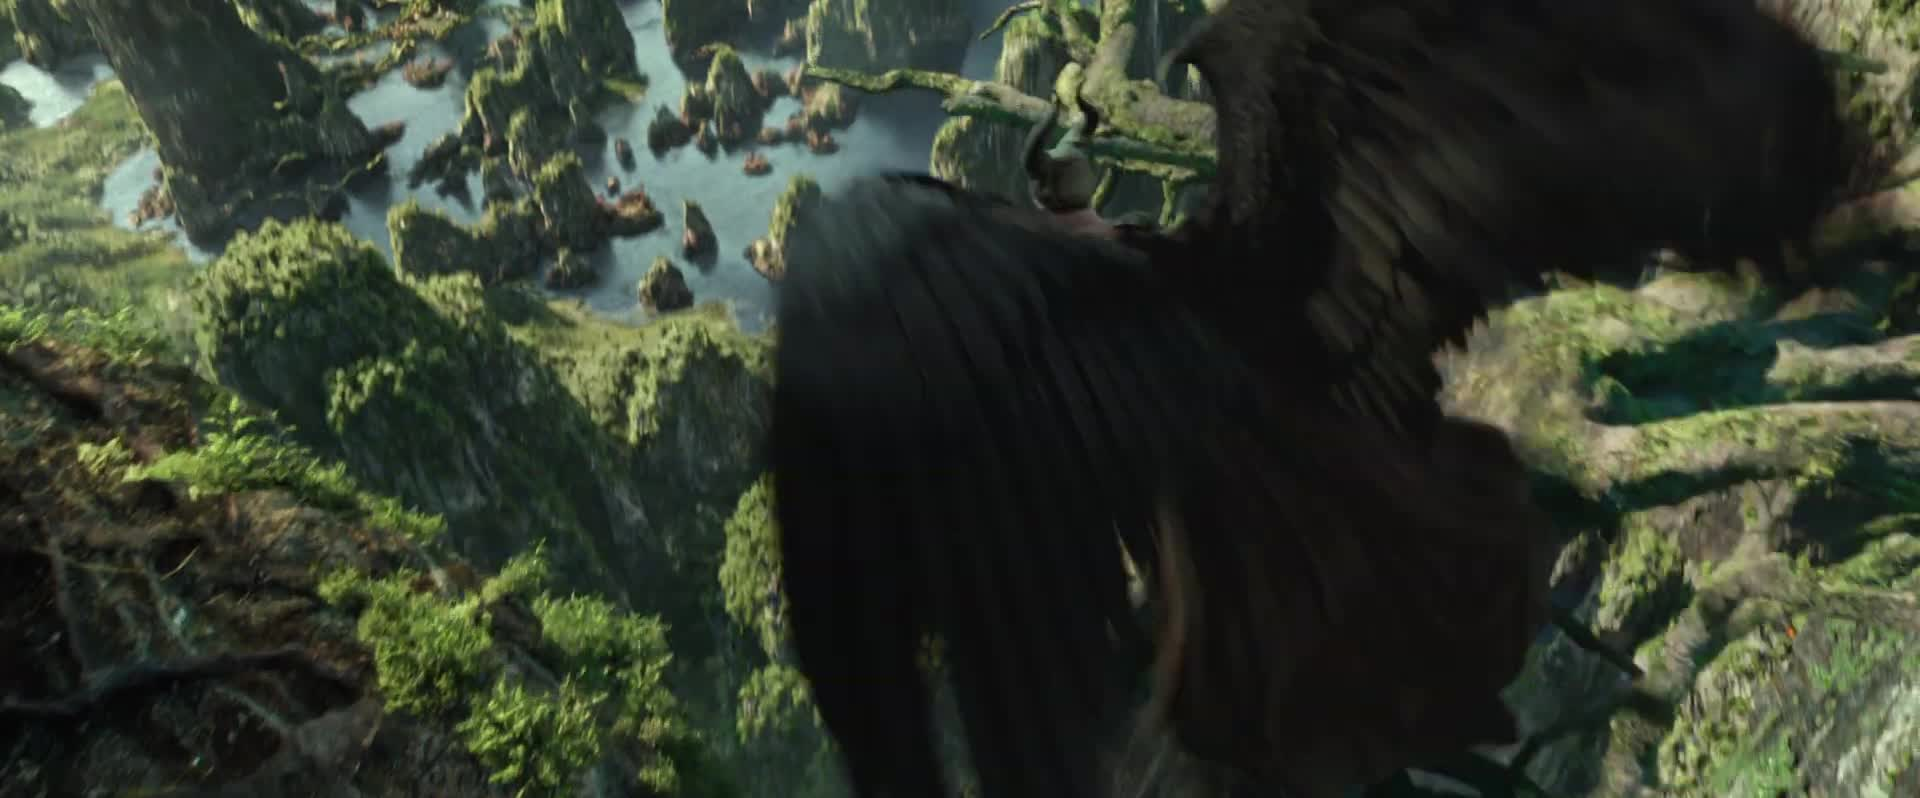 Maleficent: Mistress of Evil - Official Trailer #2 [HD] screen capture